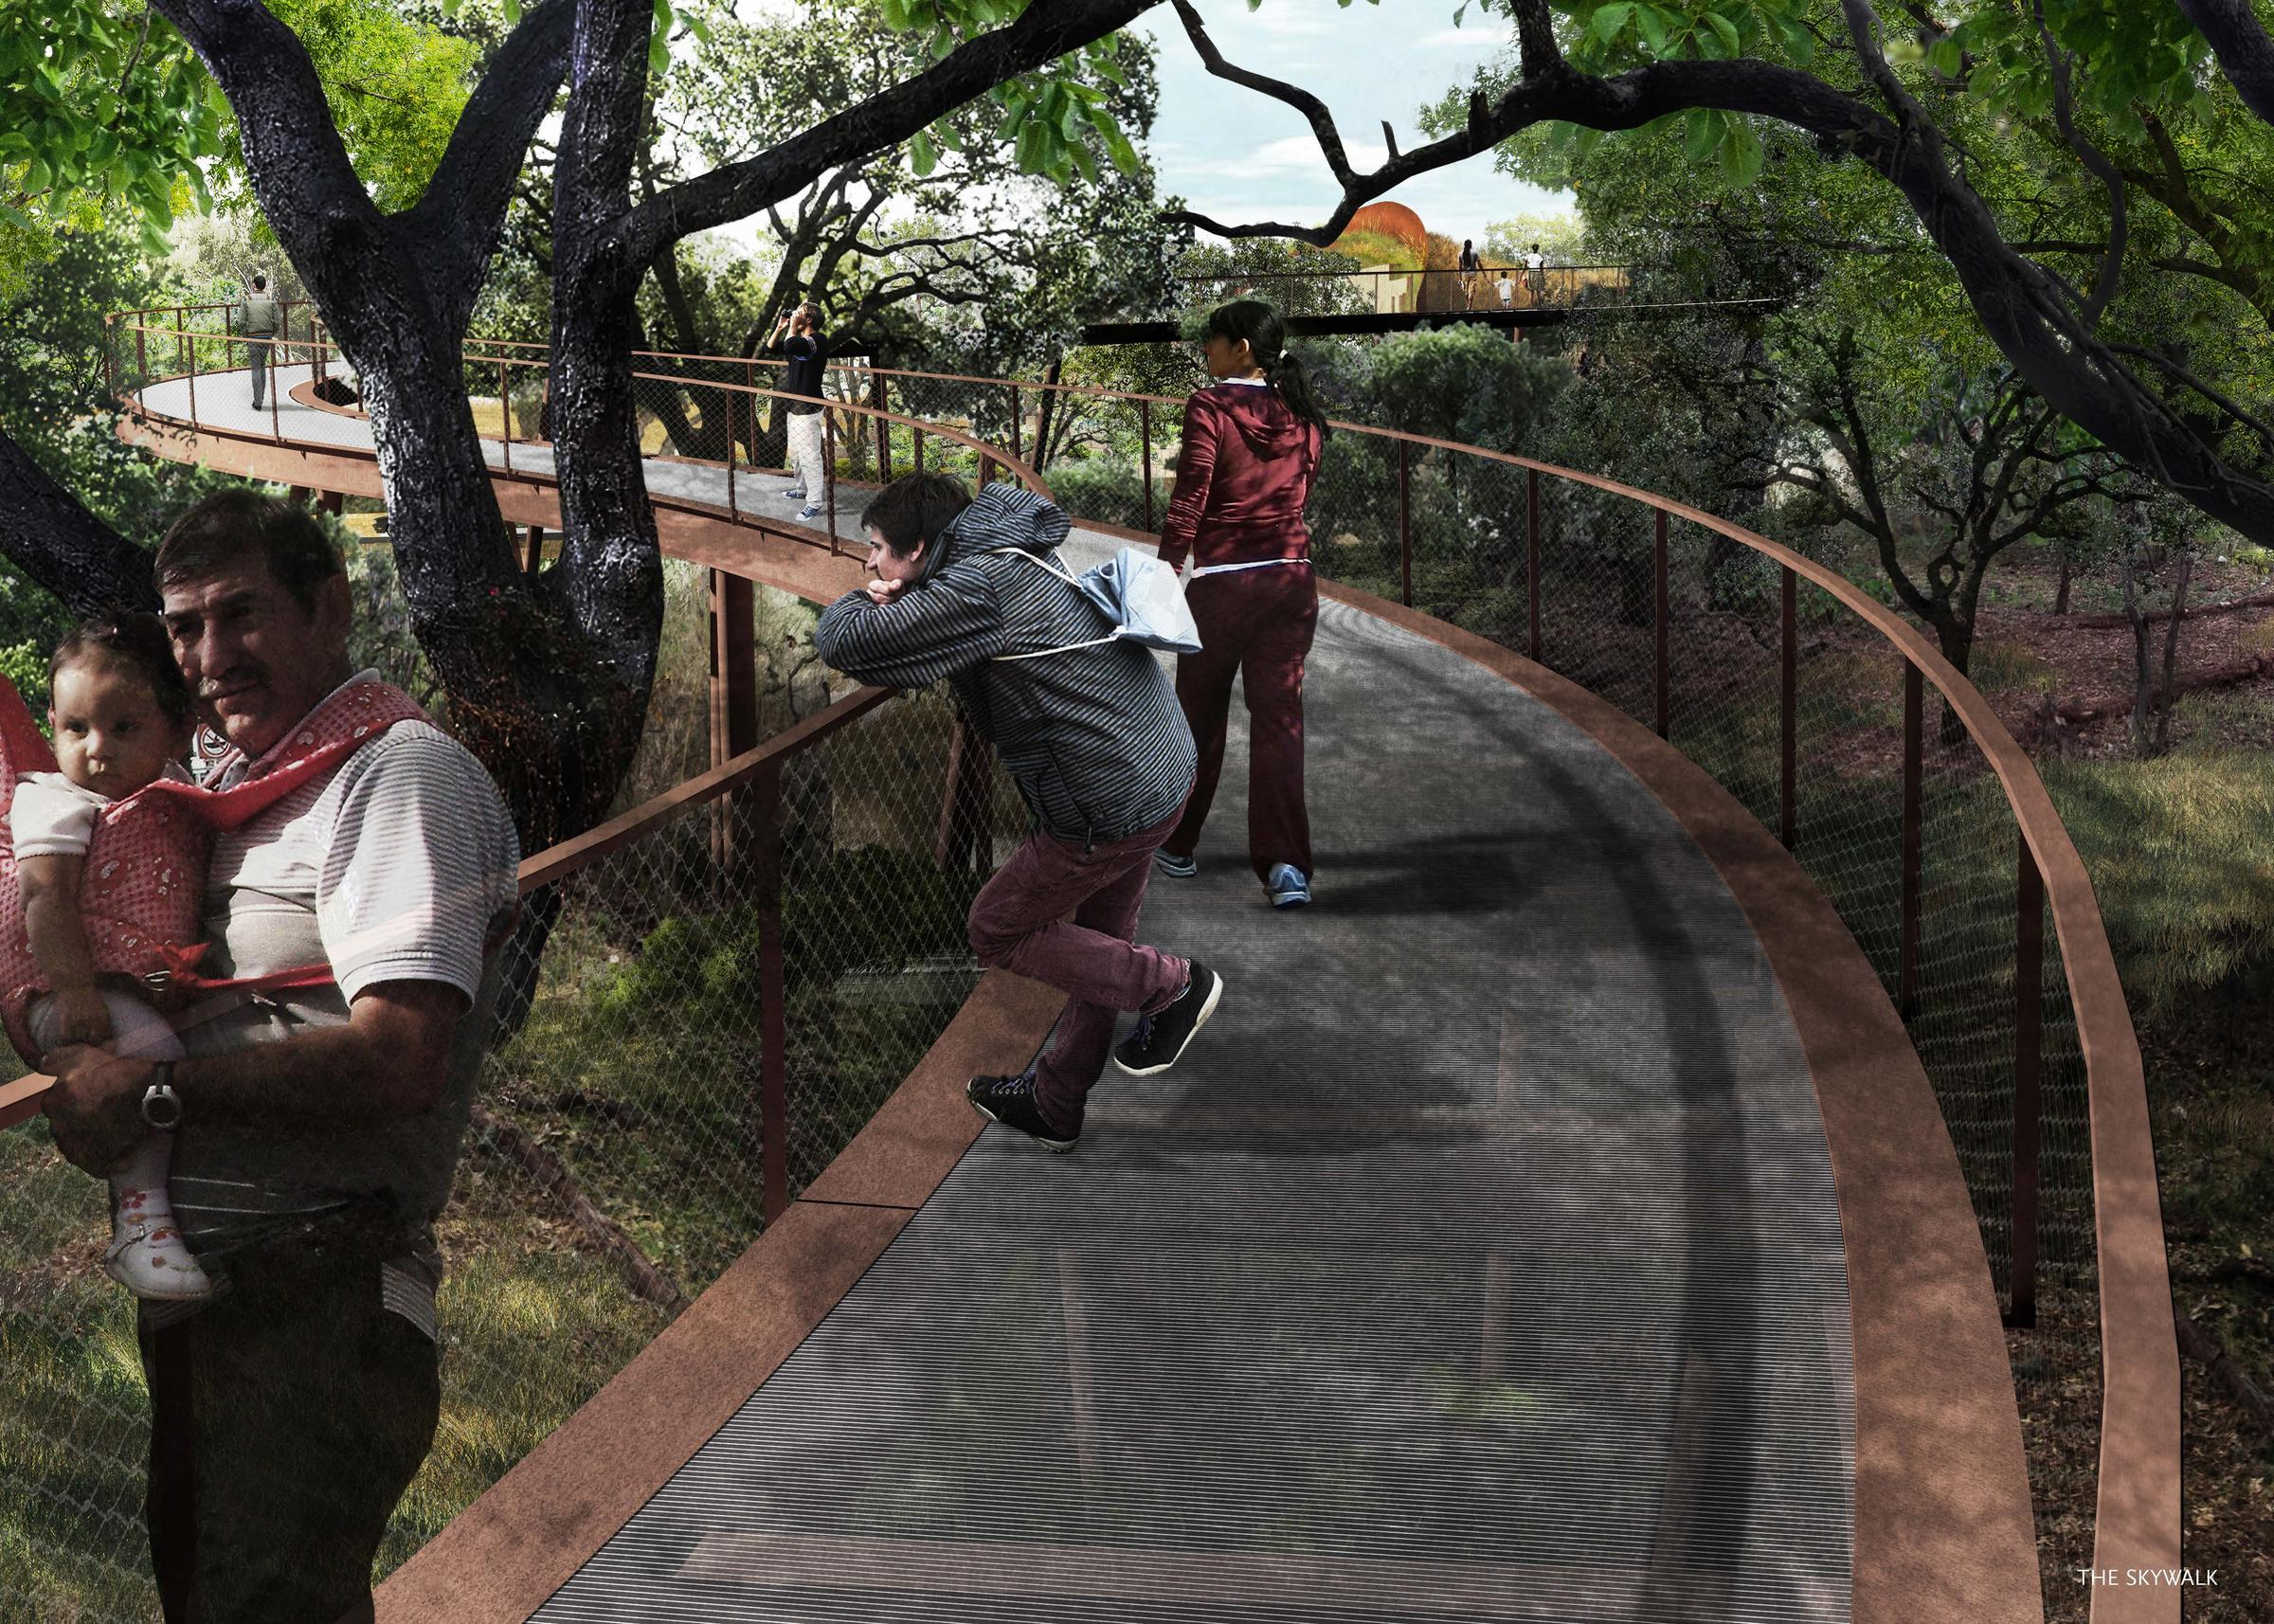 One Feature Of The Land Bridge Would Be A Skywalk An Elevated Walkway That Allow Park Goers To Climb Through Tree Tops Top